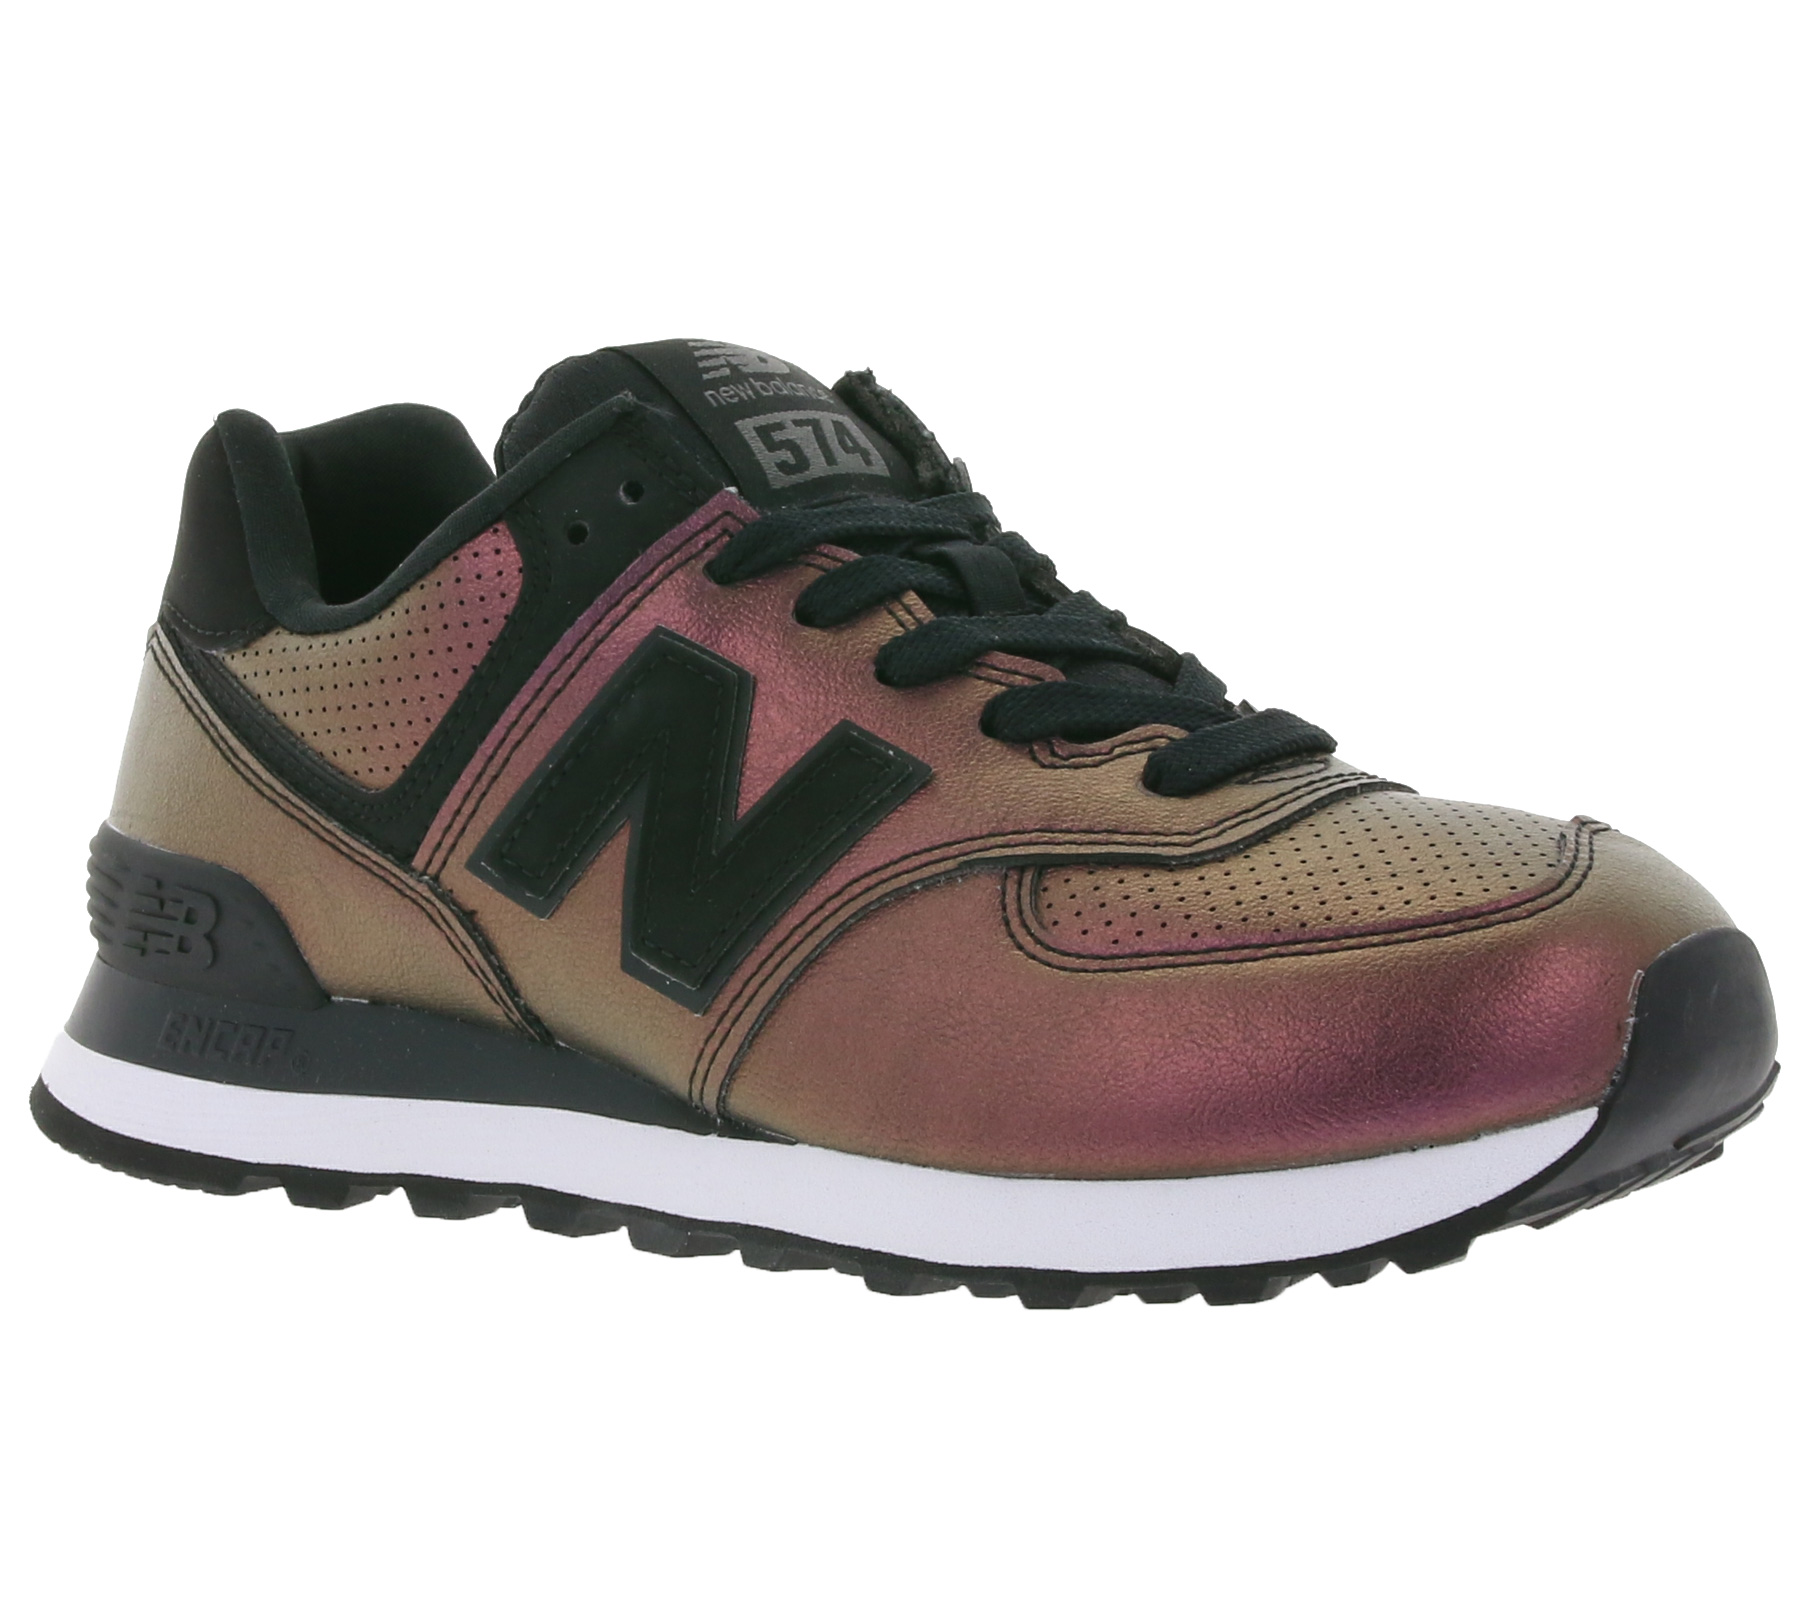 Details about NEW Balance 574 Womens Sneaker Gold Shimmery Womens Trainers  Purple SALE- show original title